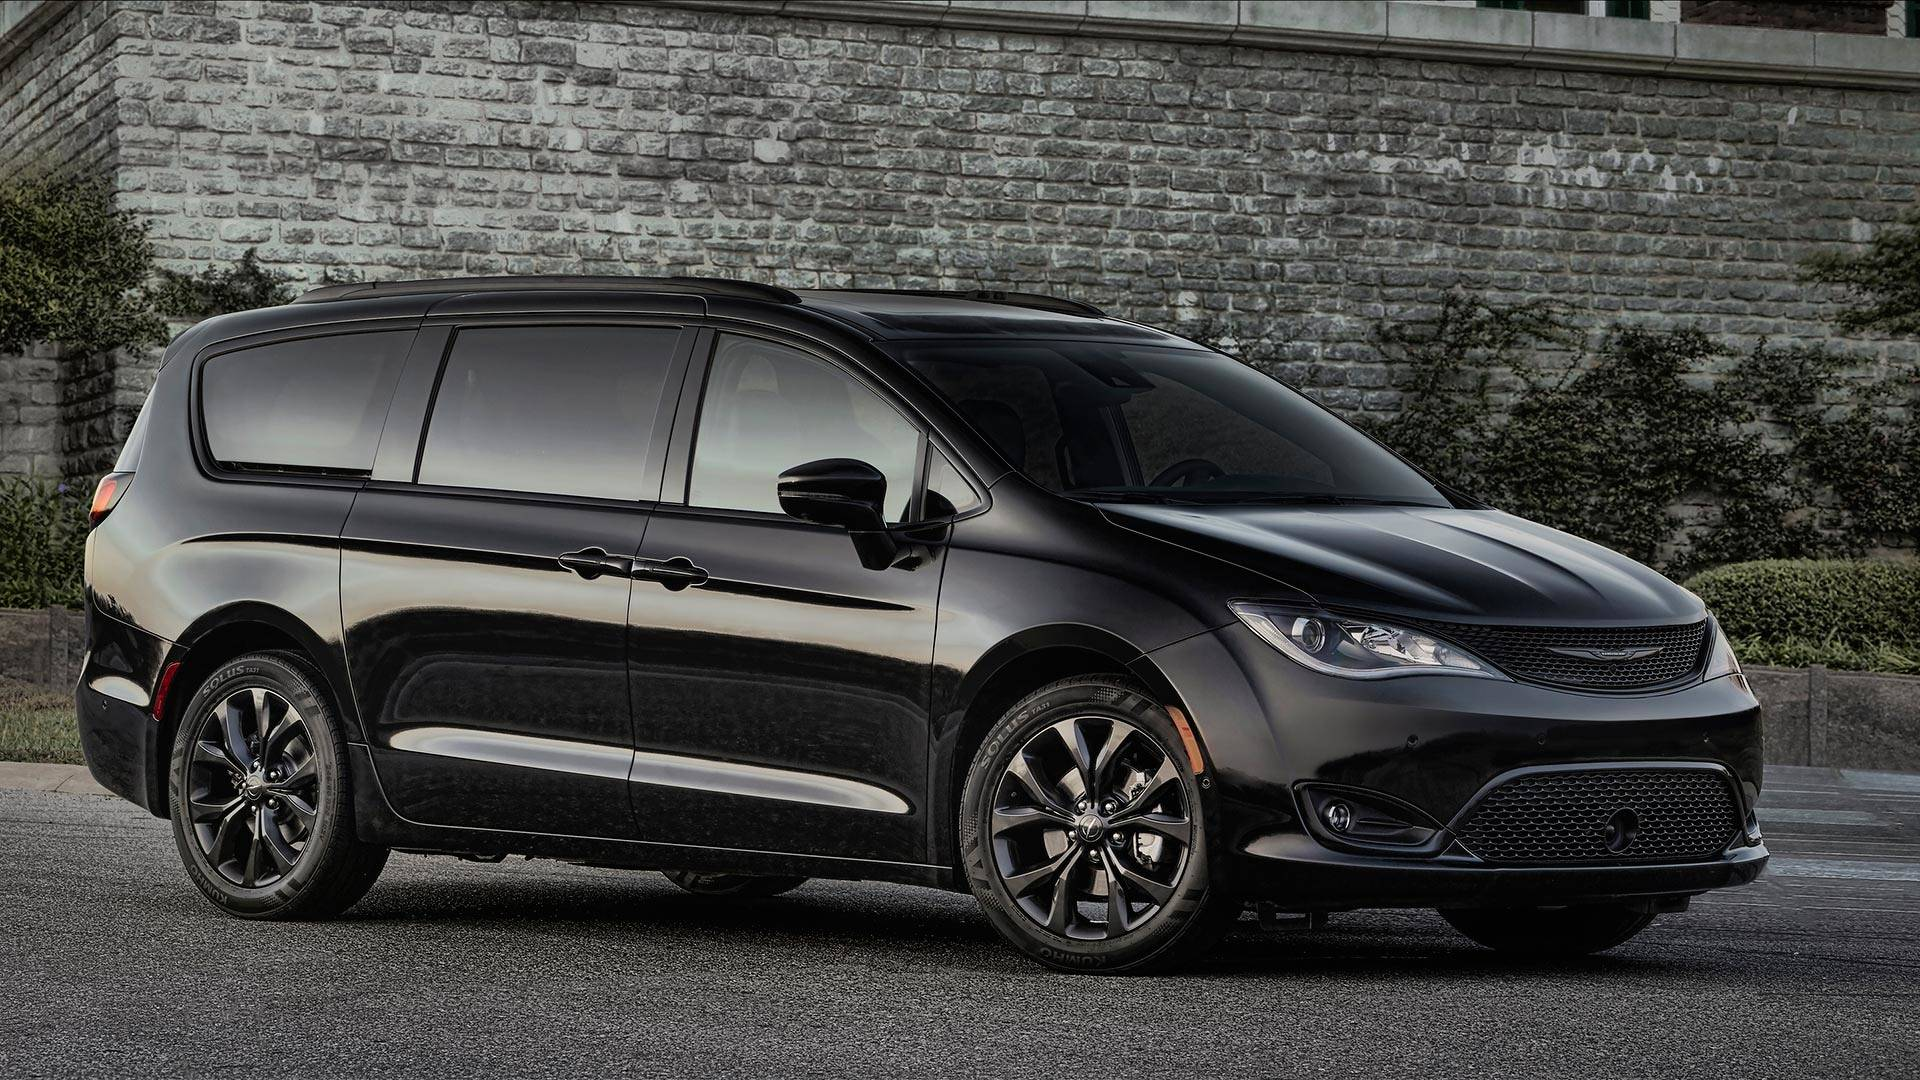 2019 Chrysler Pacifica Hybrid Gets Blacked Out Trim Package